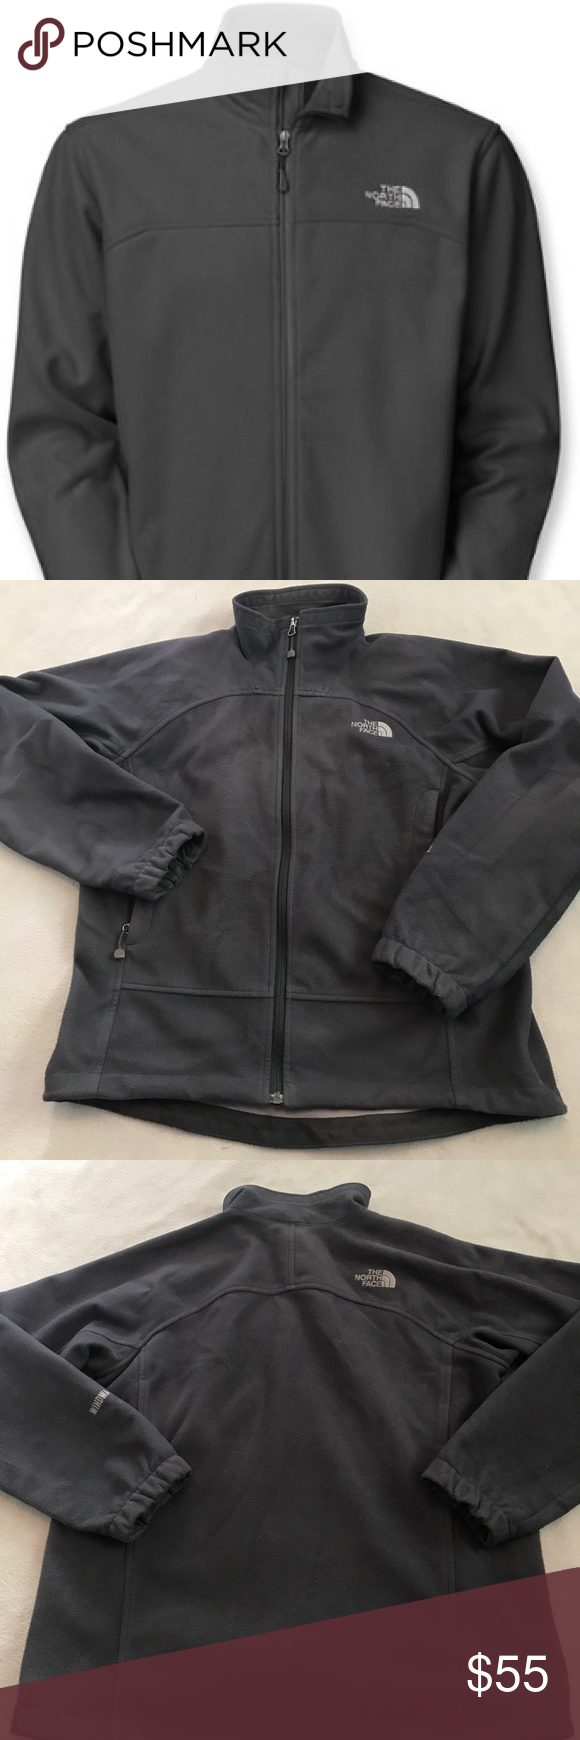 North face windwall dark gray fleece zip up jacket dark grey dark